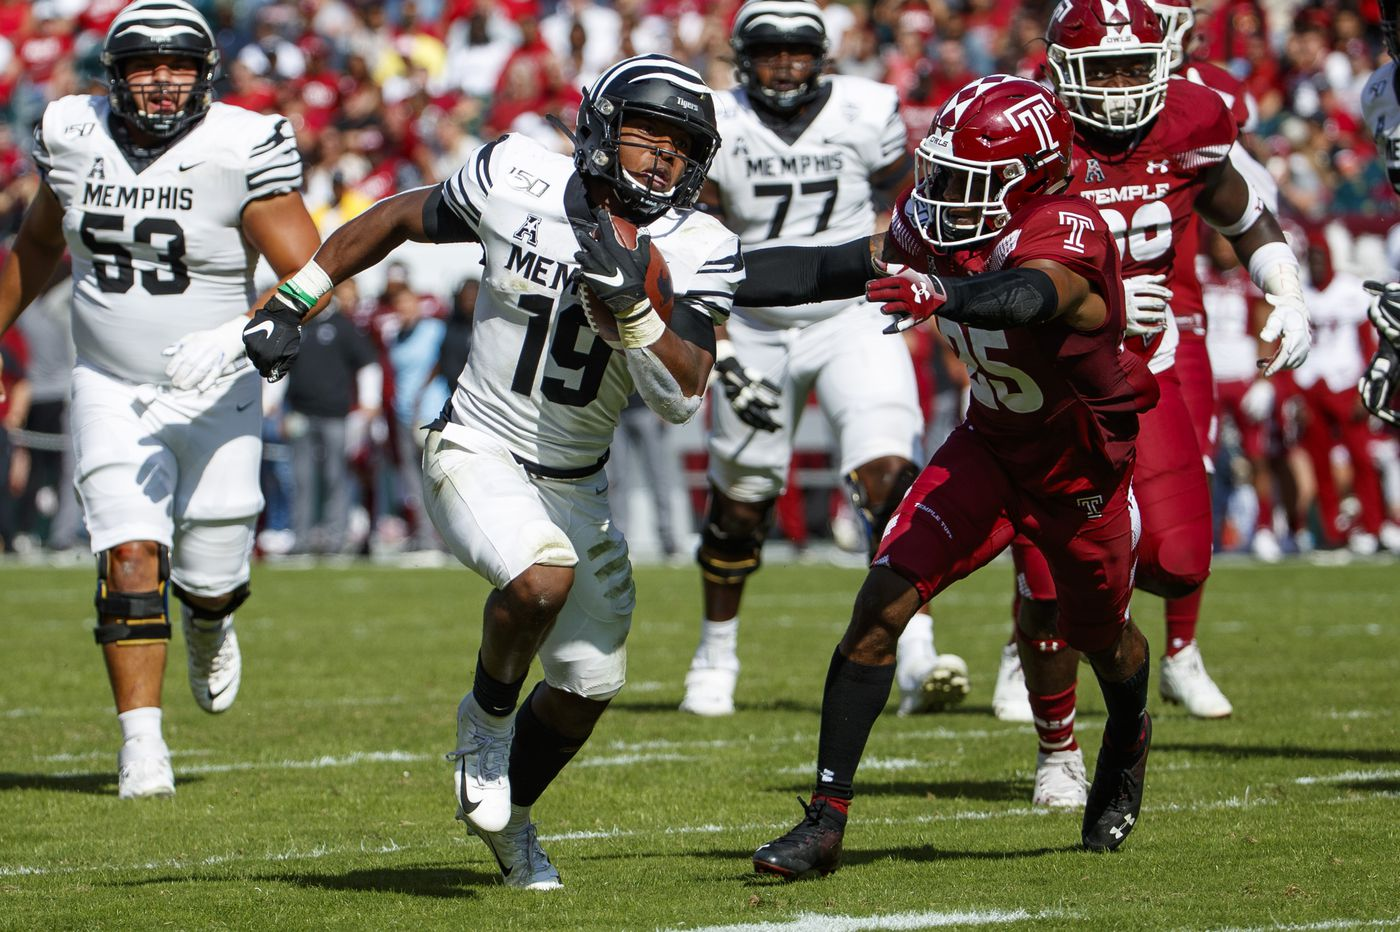 Memphis' explosive offense has Penn State's attention